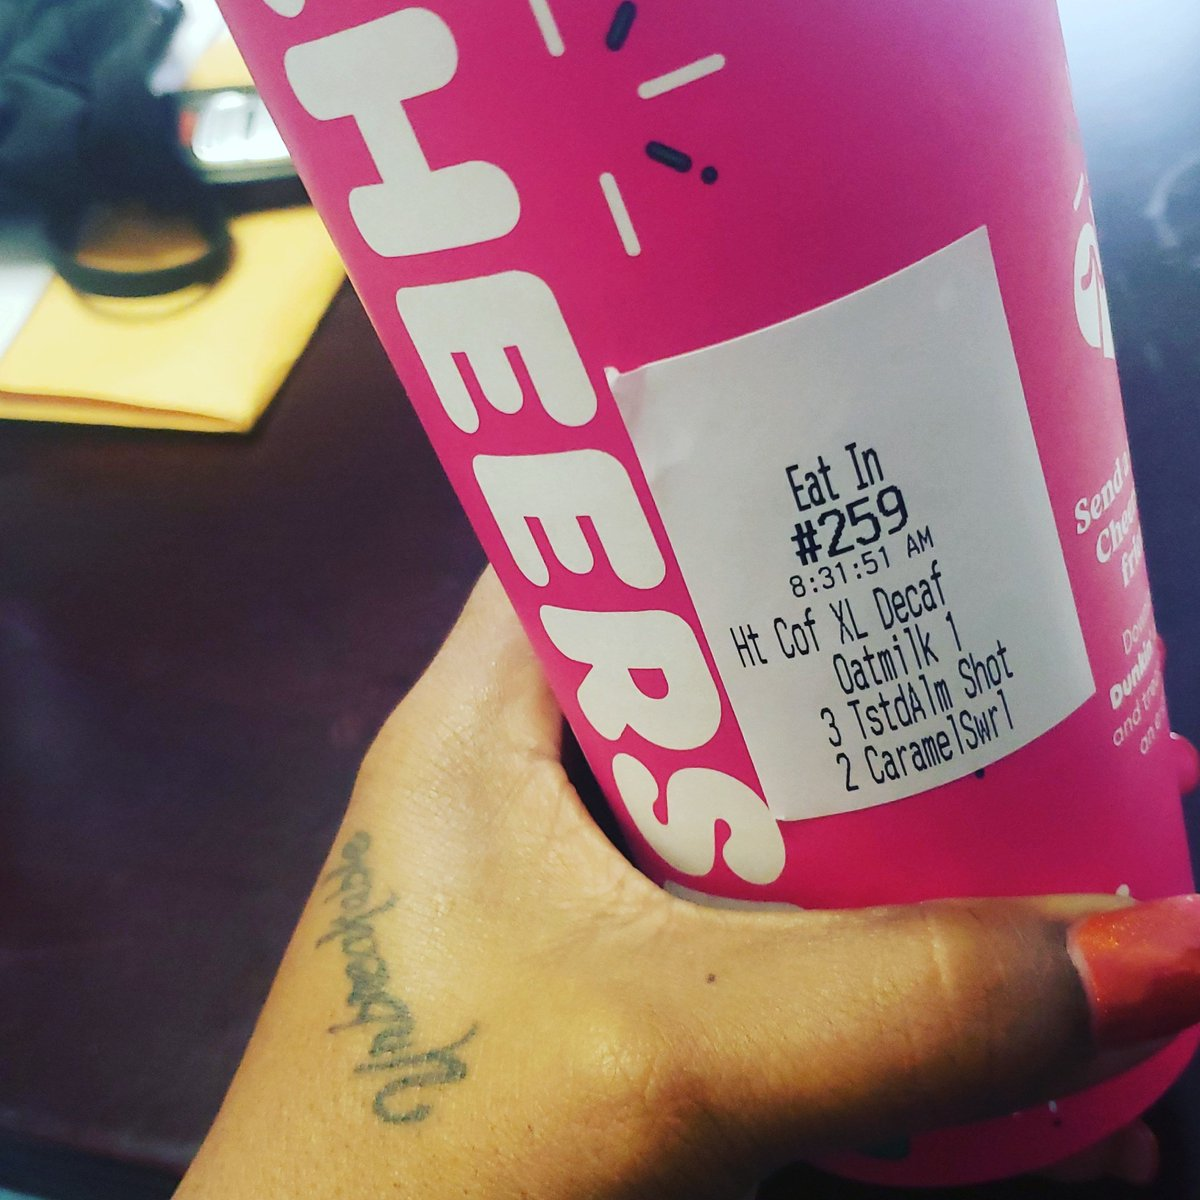 Happy FriYay... Drink More Dunkin☕ #TaxTwitter #Dunkin #Coffee #coffee #fridaymorning #SmallBusiness #SmallBusinesses #Entrepreneur #Entrepreneurship #accountant #Accounting